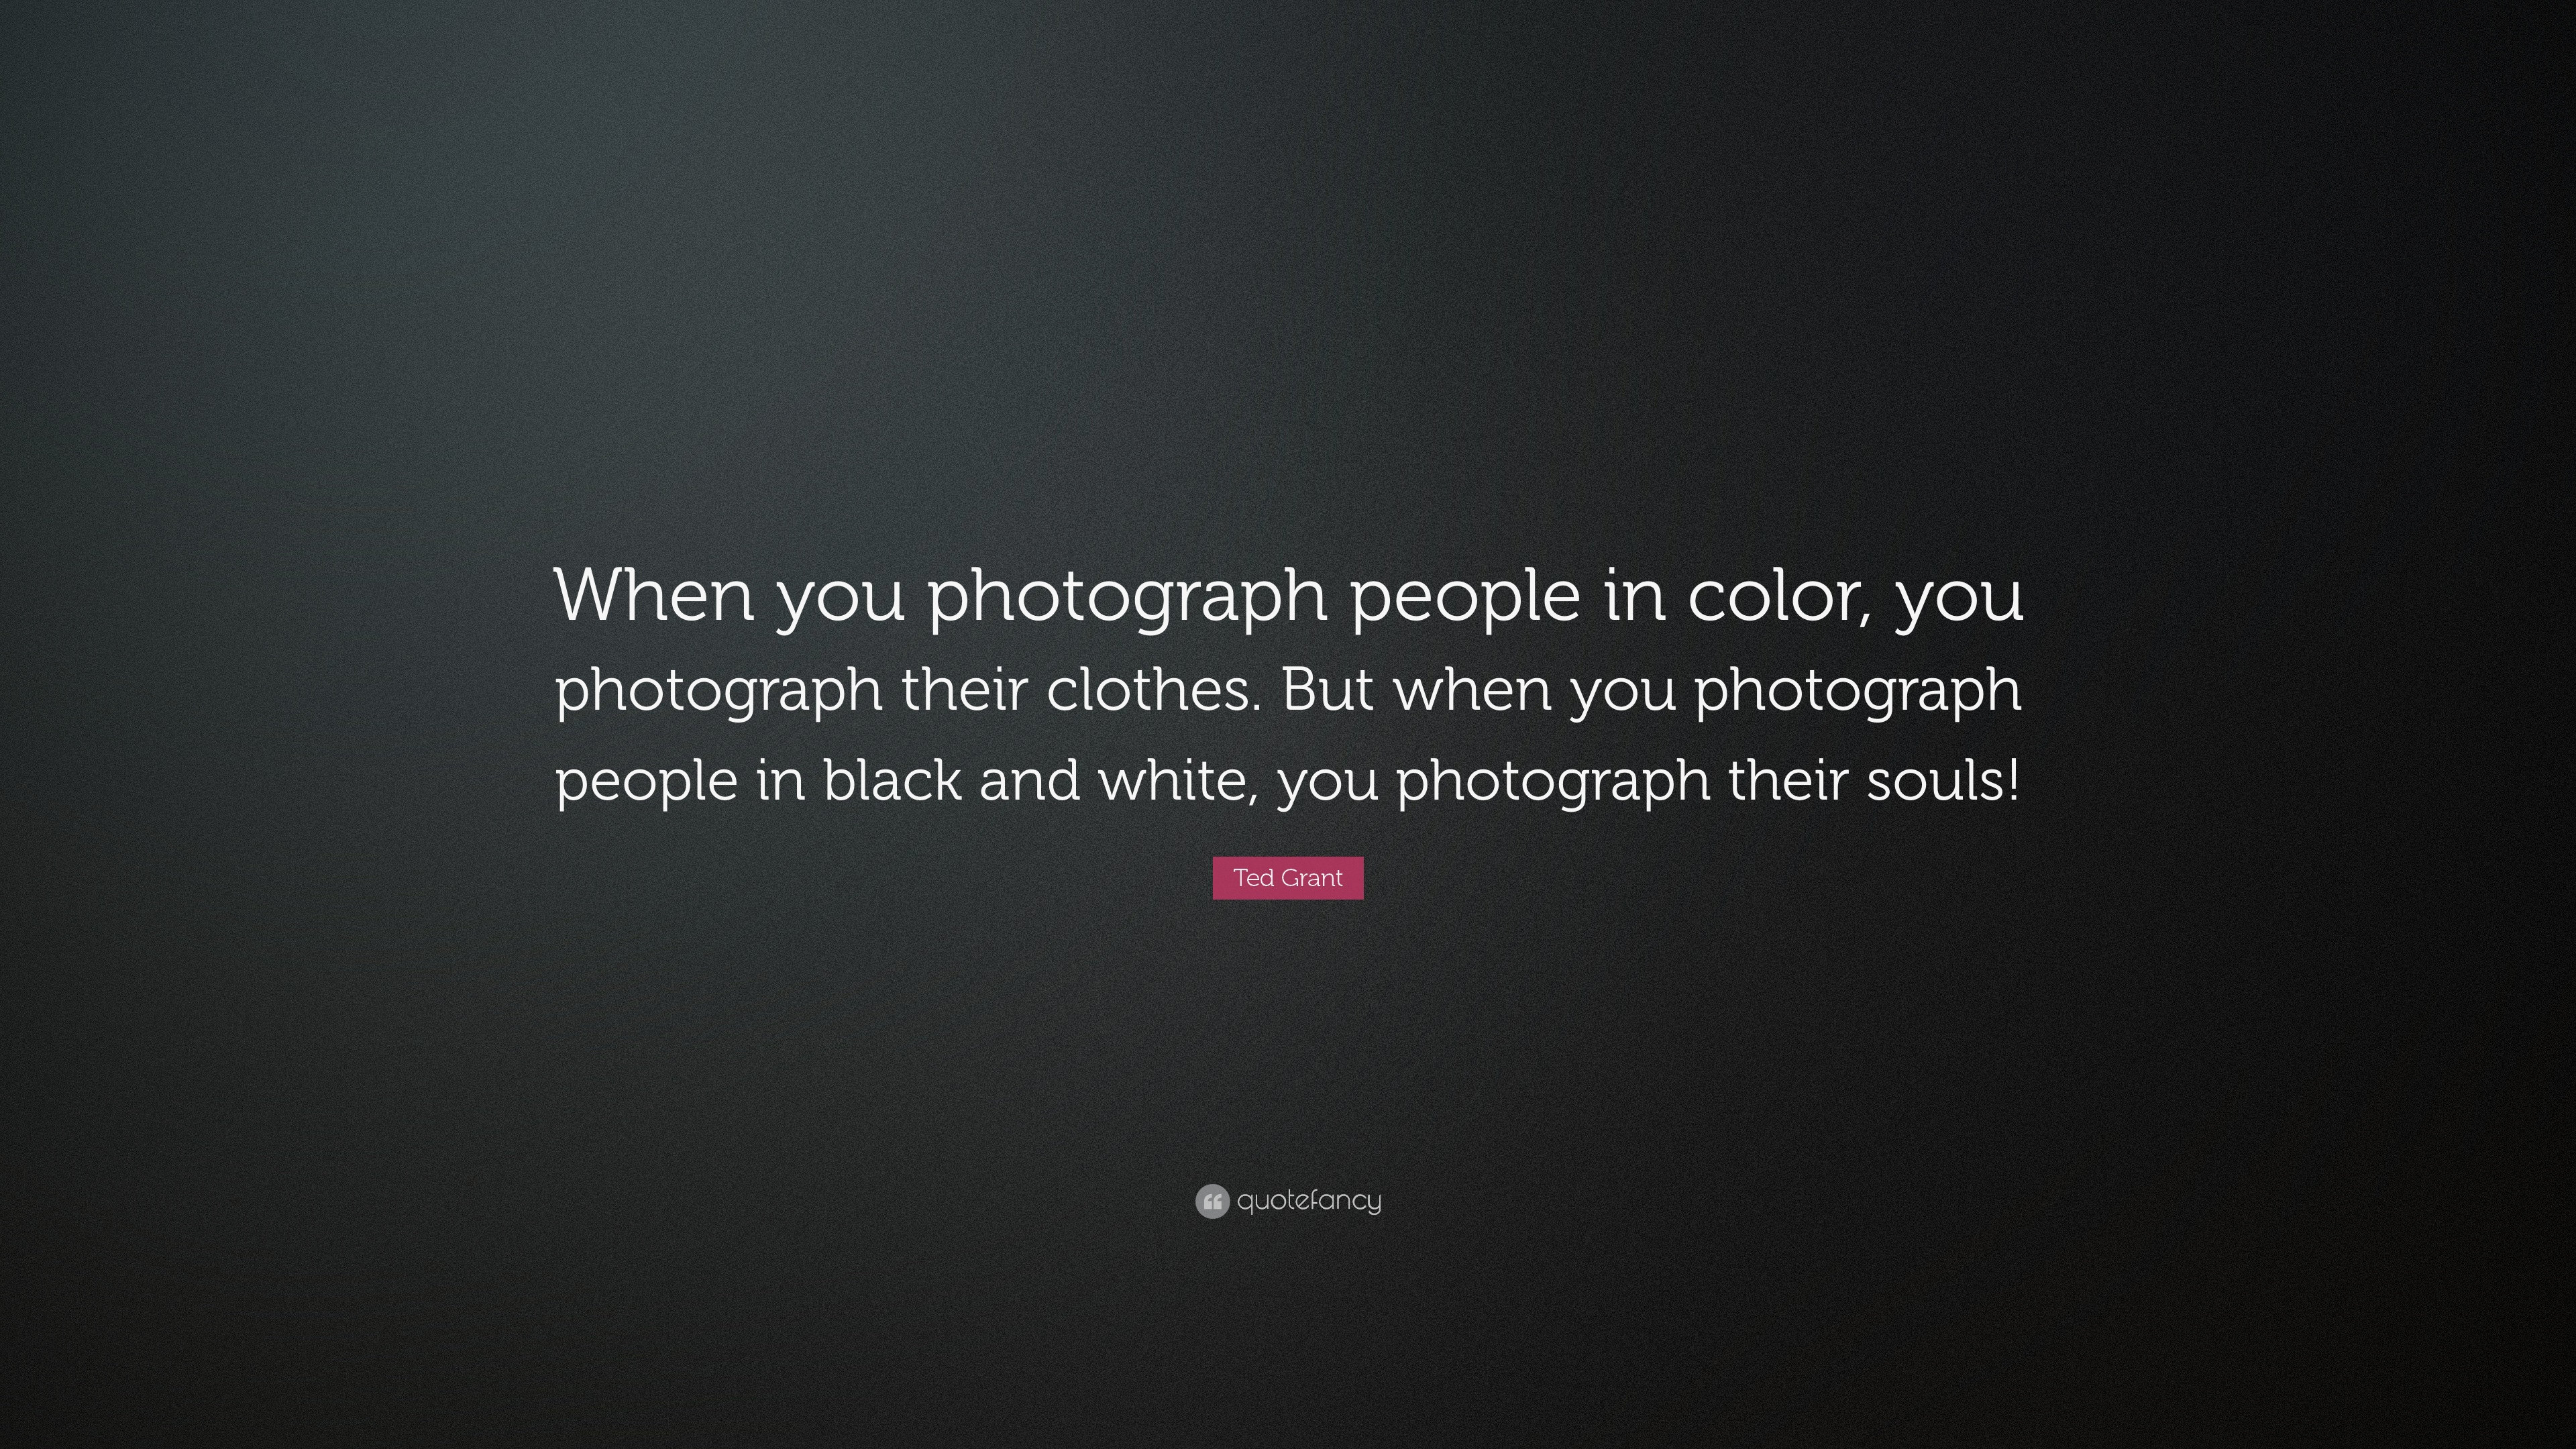 Ted grant quote when you photograph people in color you photograph their clothes